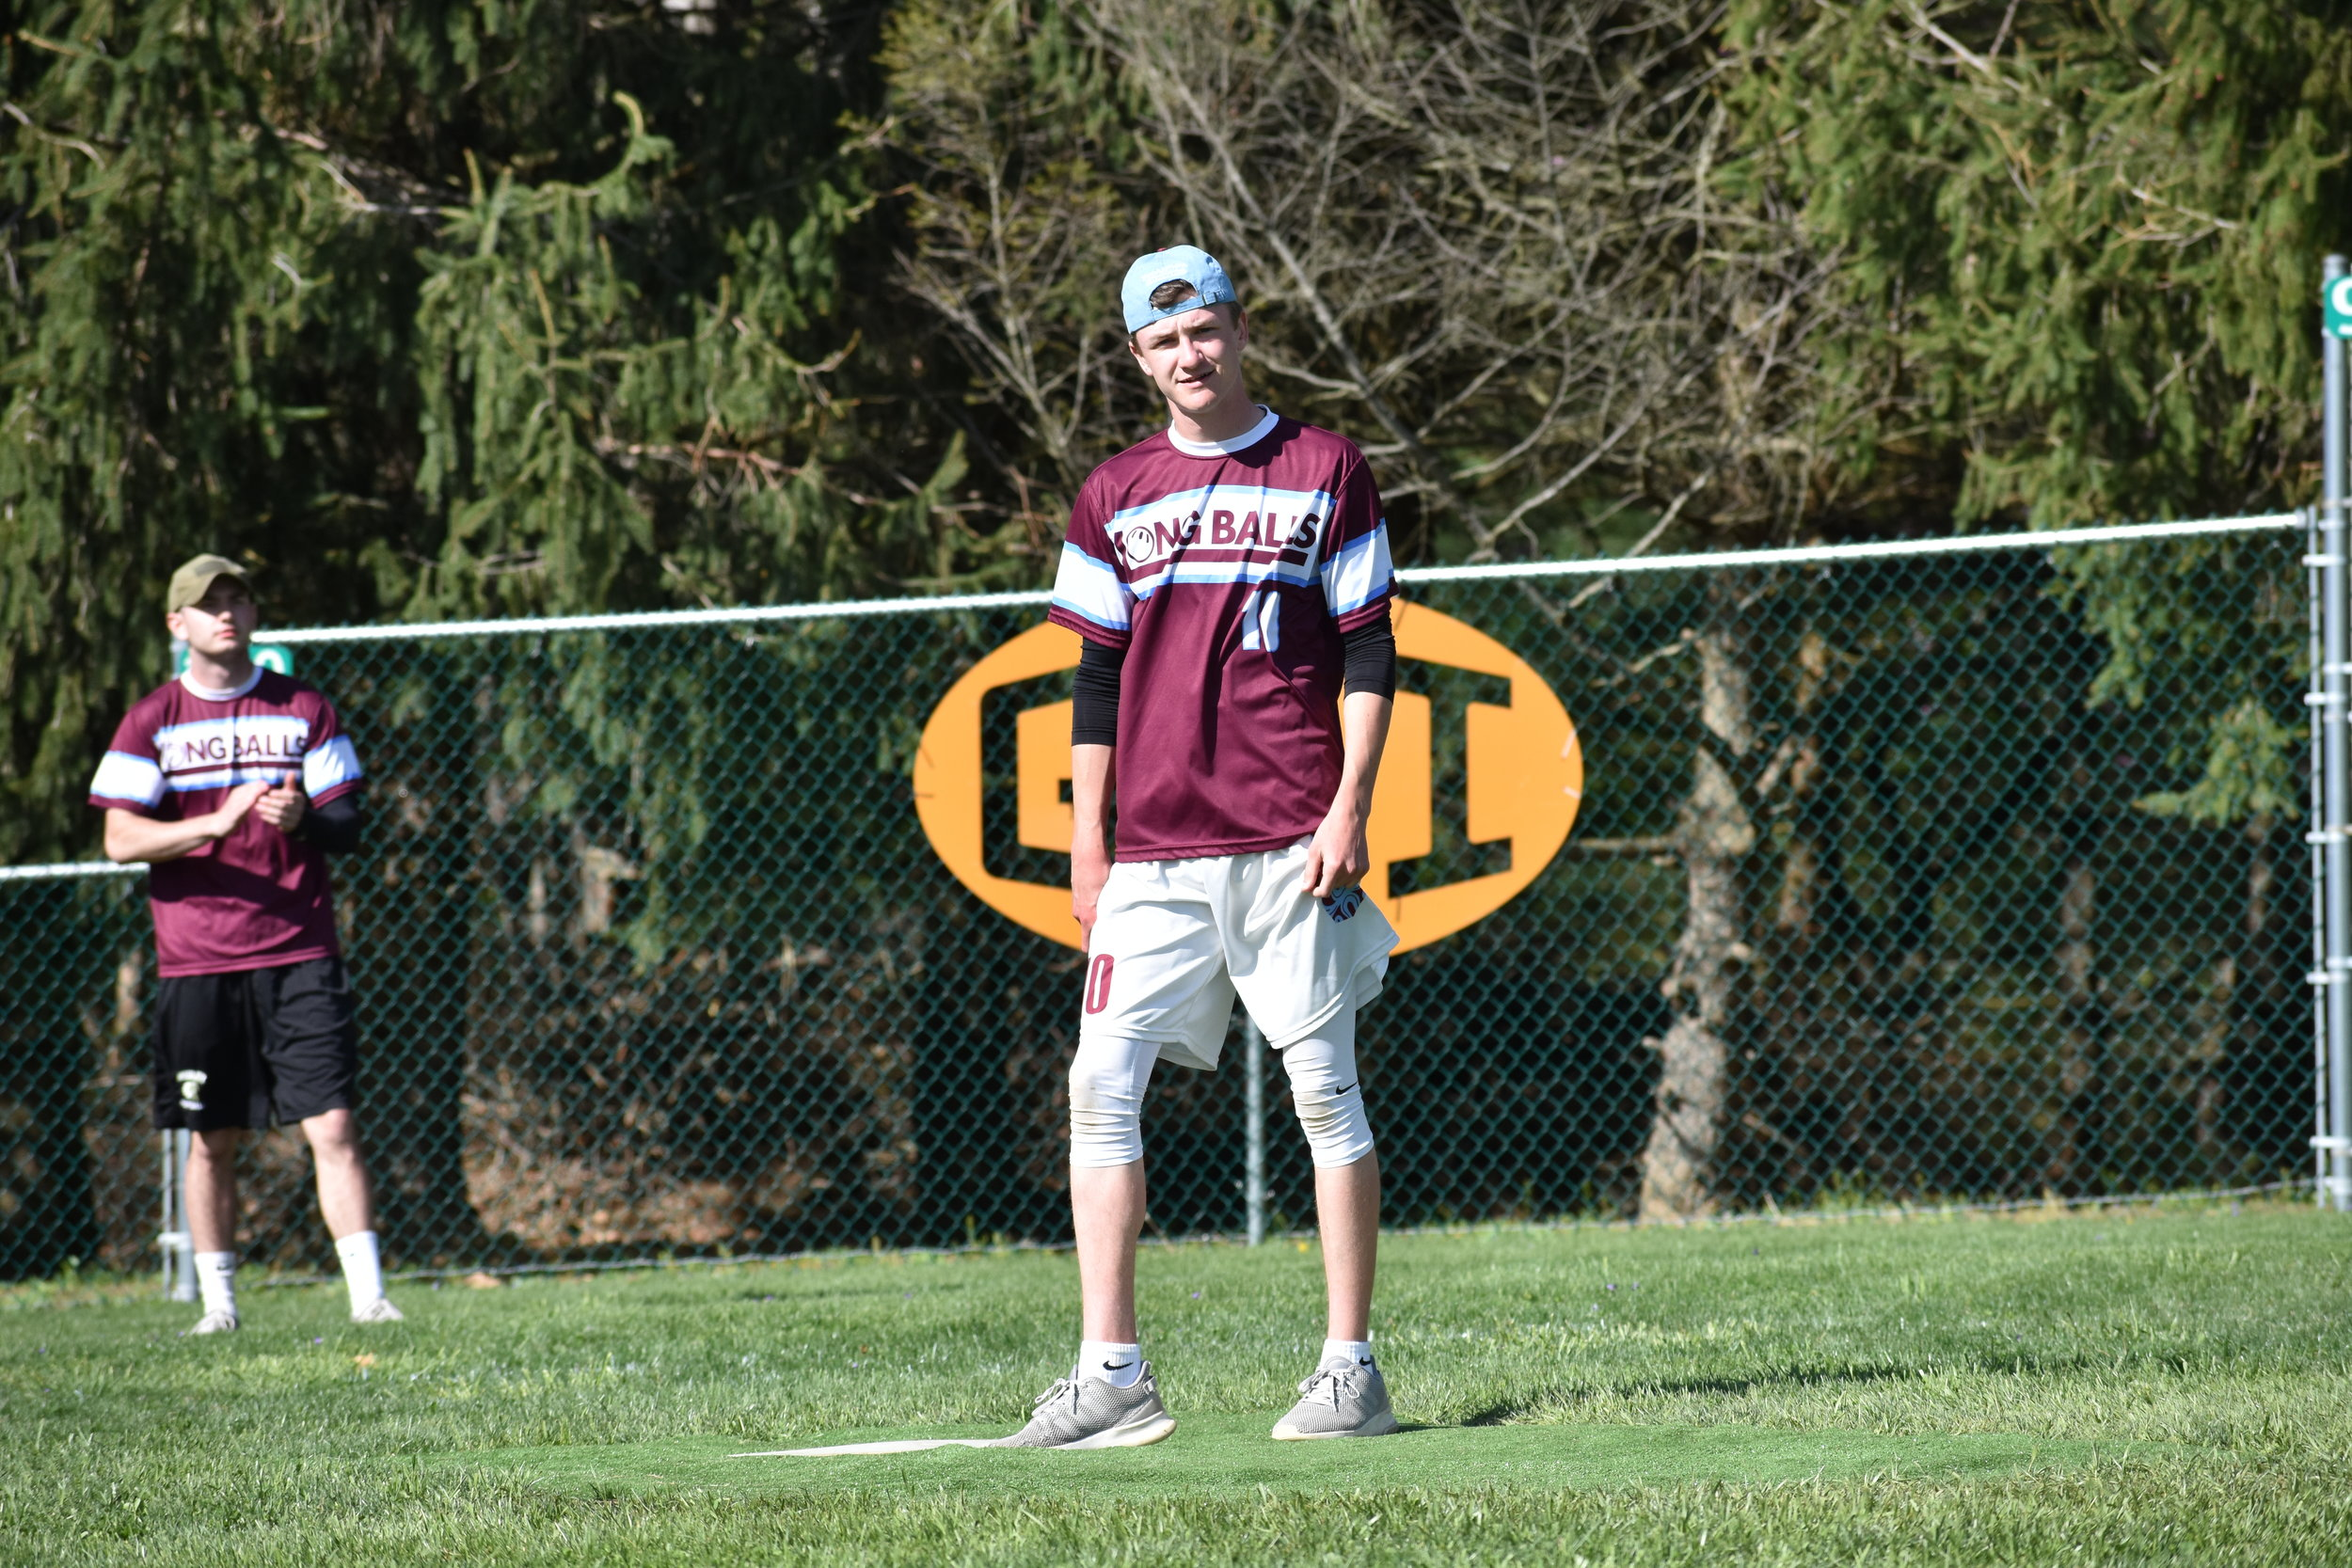 Getting ready to go into (one of his many) pitching motions, the Longball's Tommy Loftus catches the camera. (April 20, 2019)